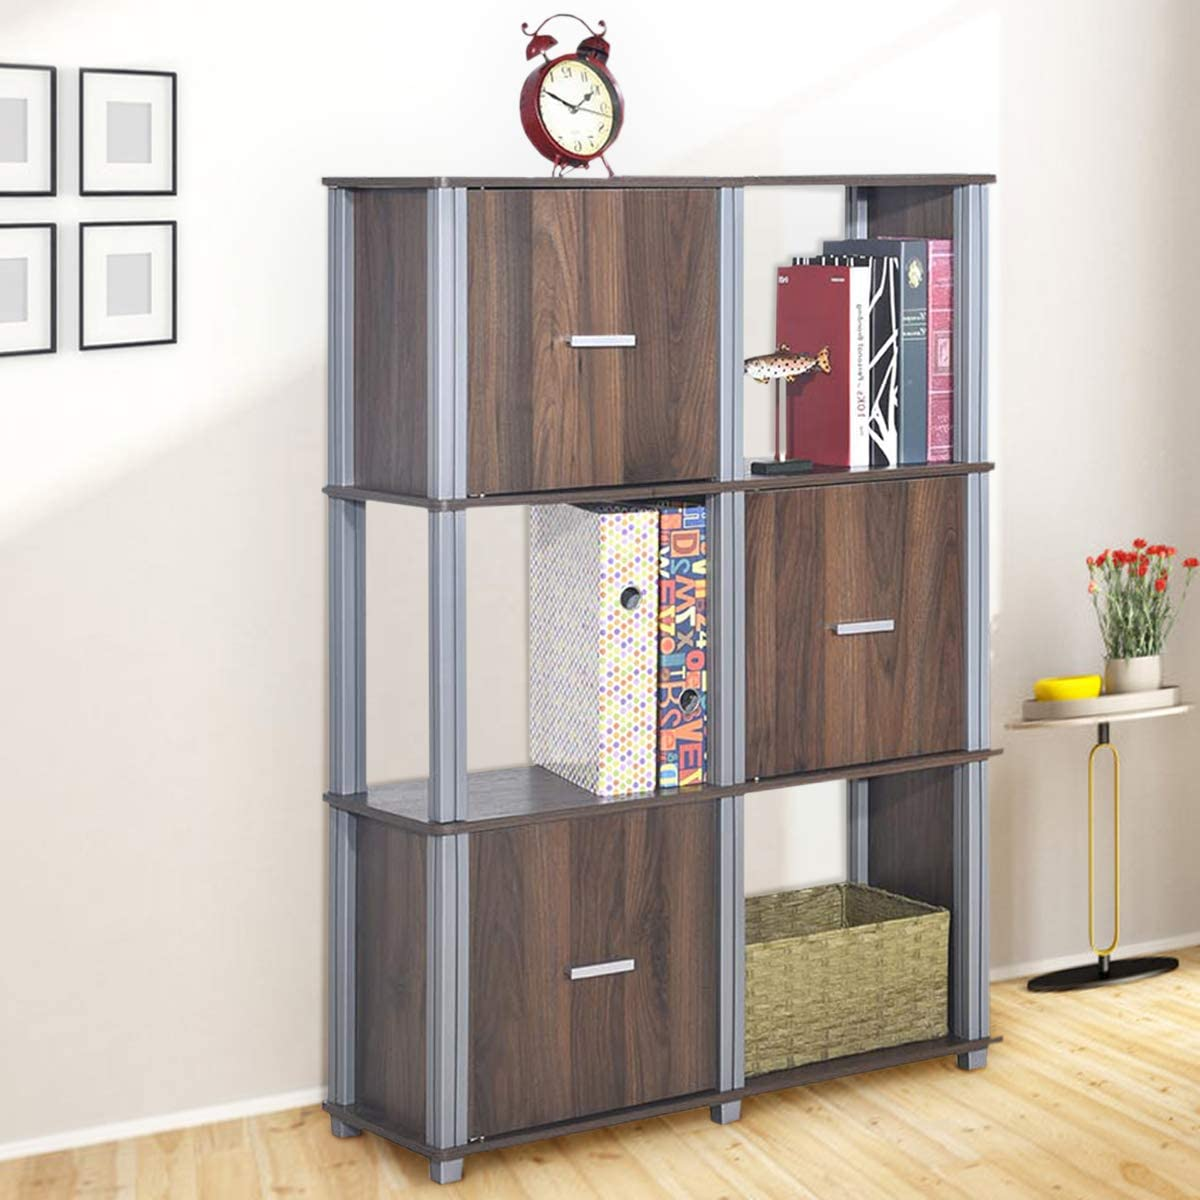 Tangkula Storage Shelf 3-Tier Utility Shelf Multifunctional Storage Cabinet Organizer Rack Display Stand Bookcase Bookshelf Walnut